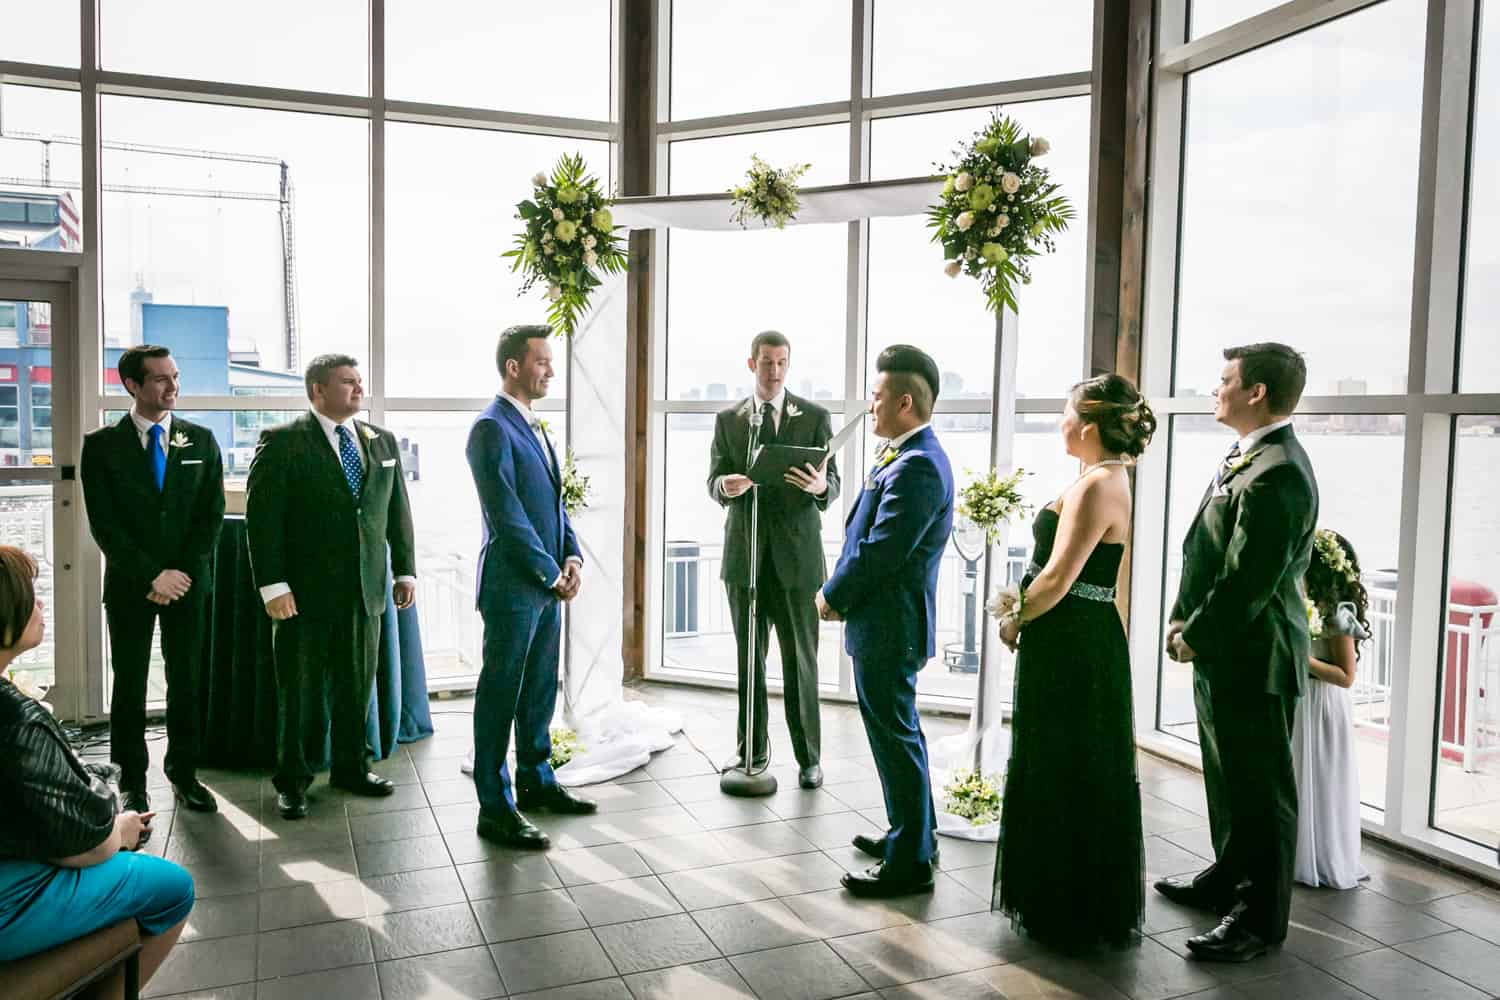 Bridal party standing in front of window during ceremony at a Lighthouse at Chelsea Piers wedding